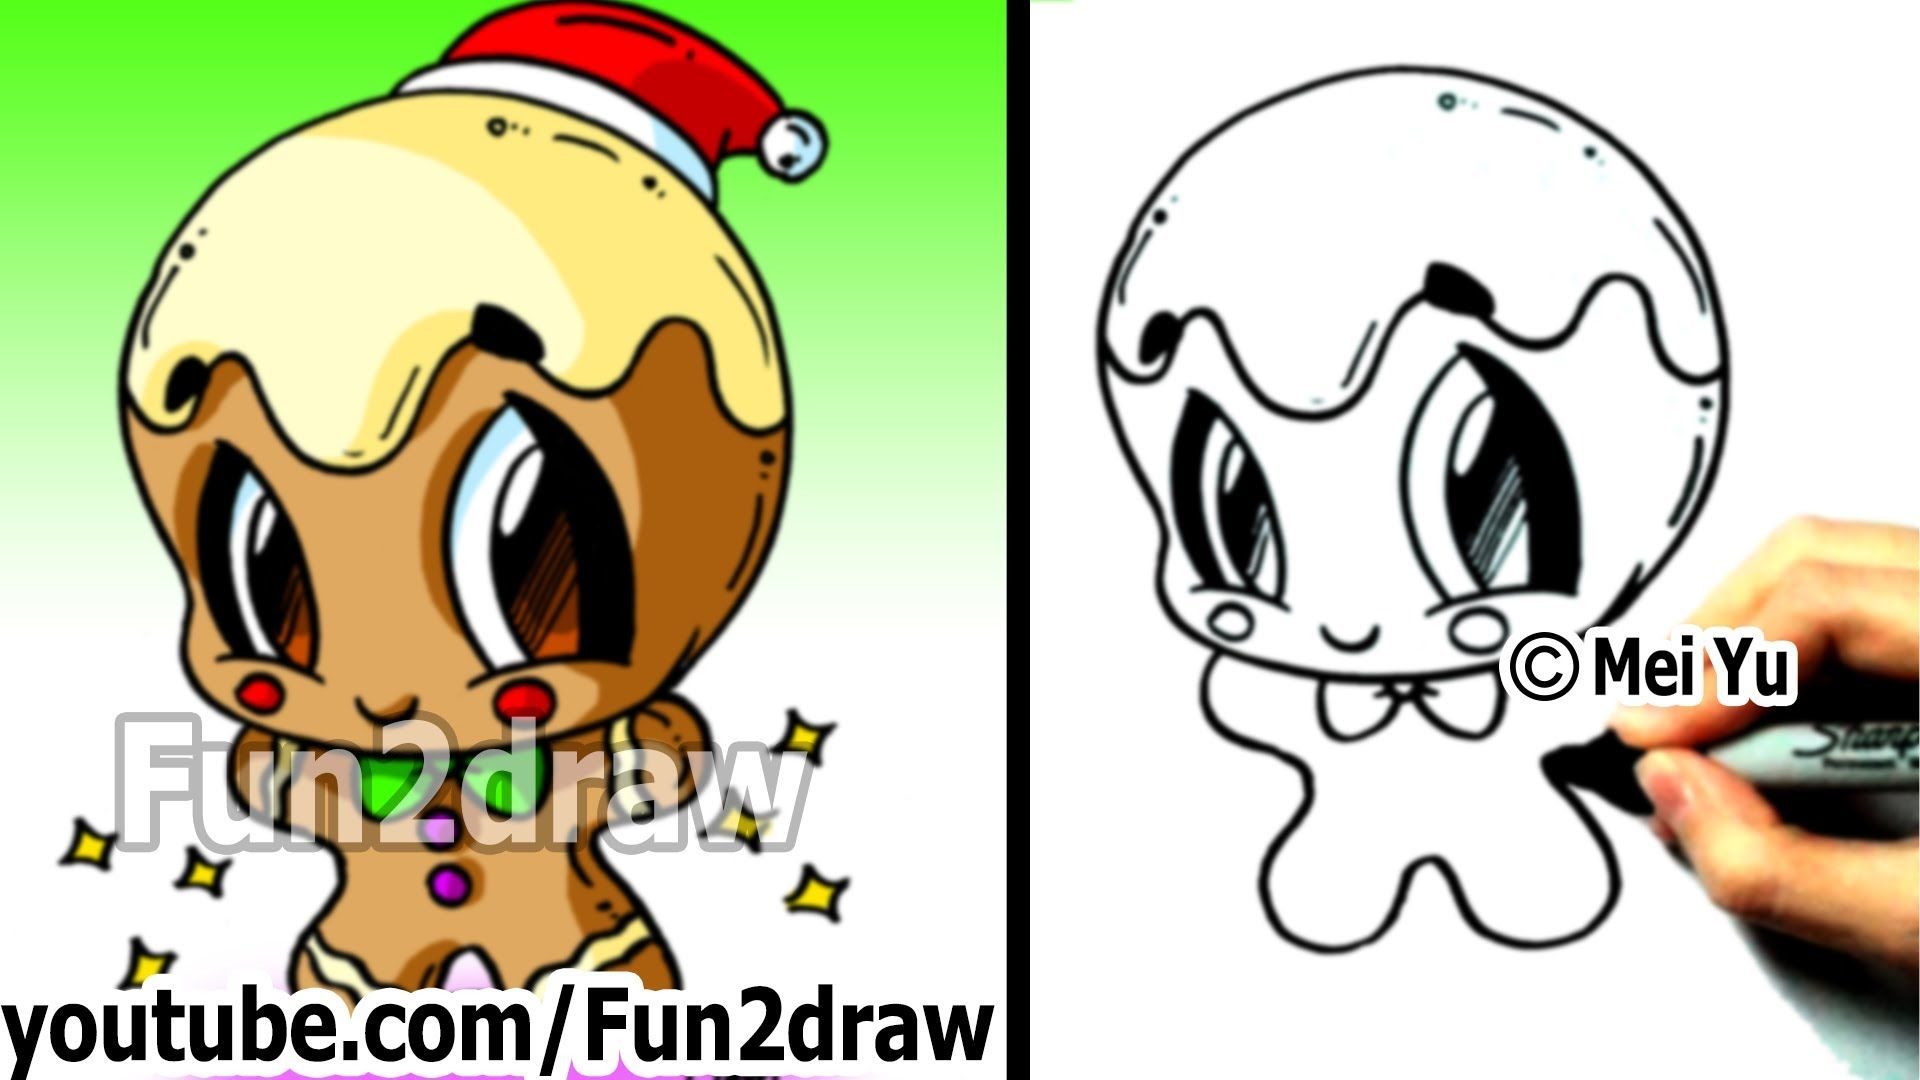 Cute Christmas Drawings.How To Draw Christmas Pictures How To Draw A Gingerbread